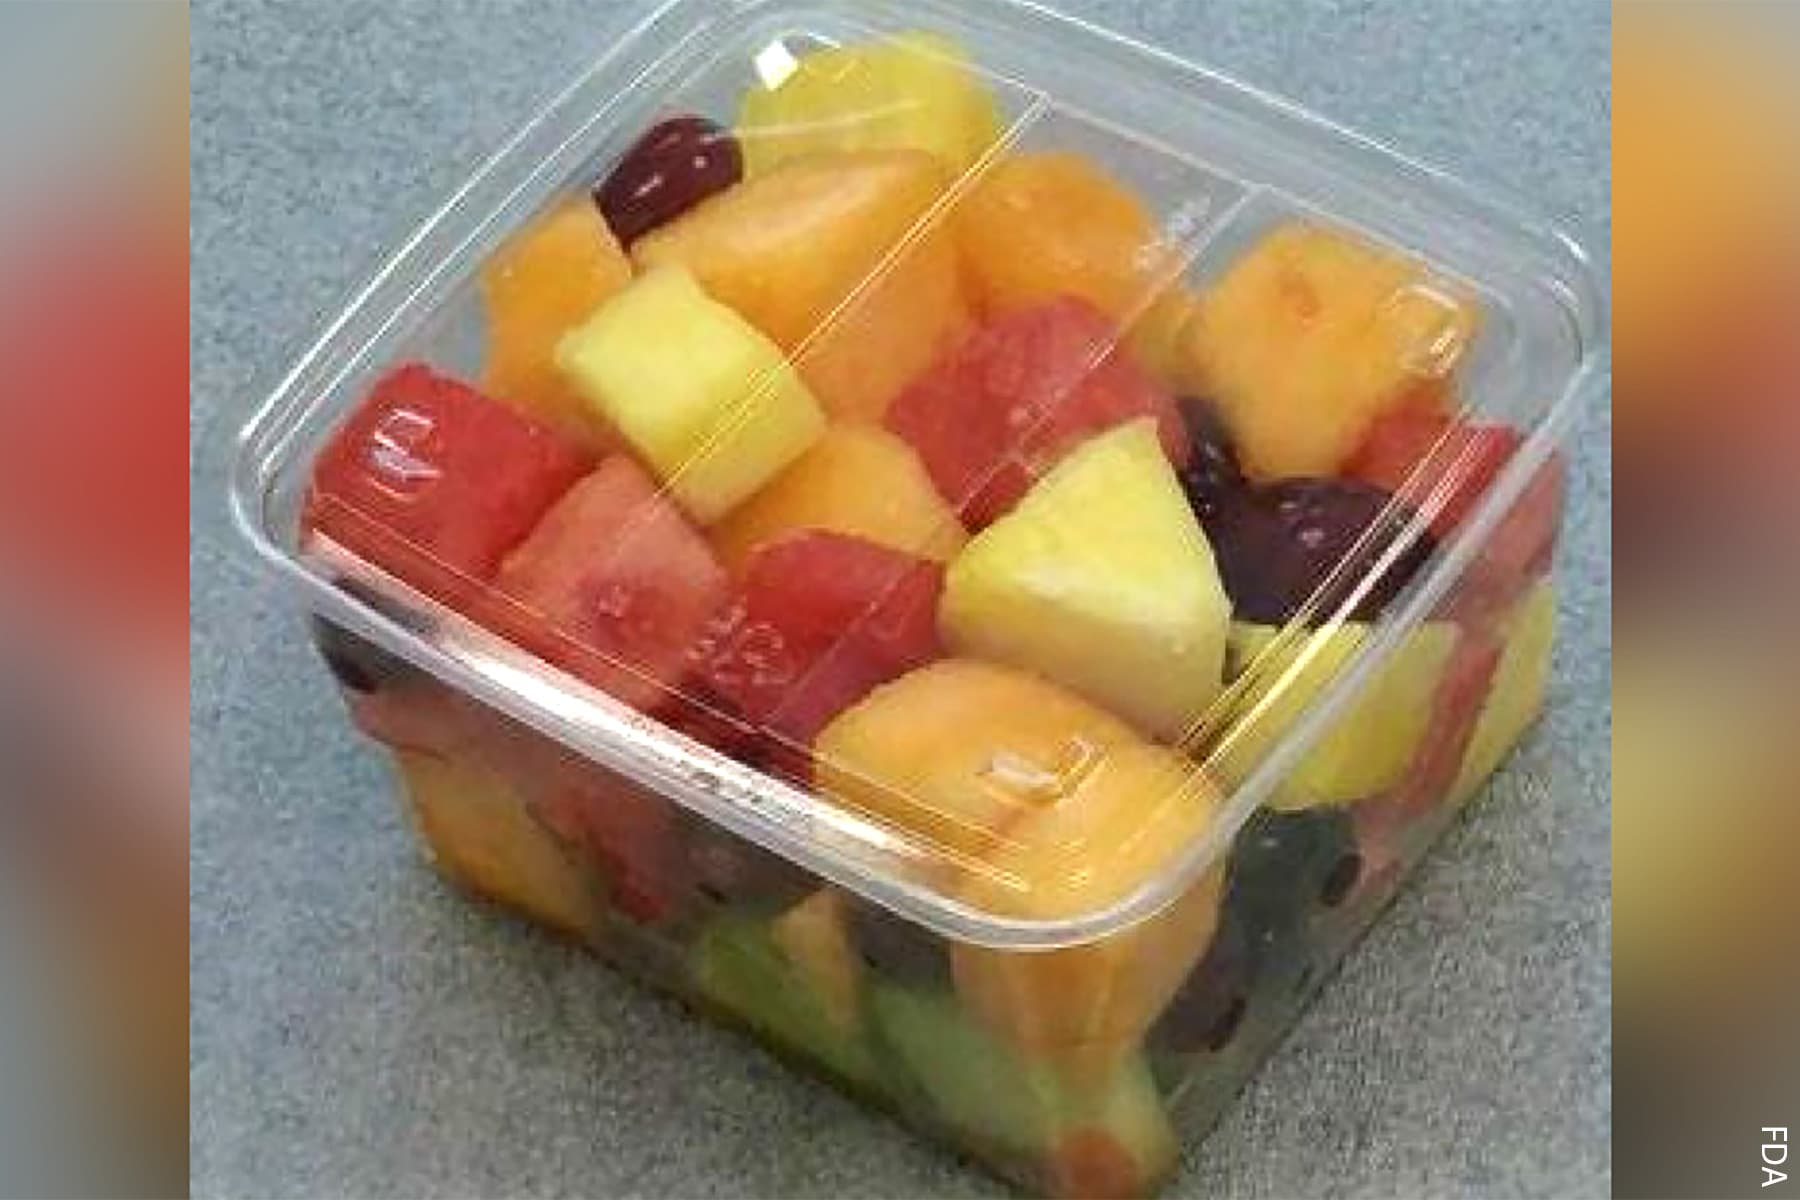 Cantaloupes Cut Fruit Recalled From Major Stores See 248 unbiased reviews of cantaloupe, rated 4 of 5 on tripadvisor and ranked #244 of 5,239 restaurants in kuala lumpur. cantaloupes cut fruit recalled from